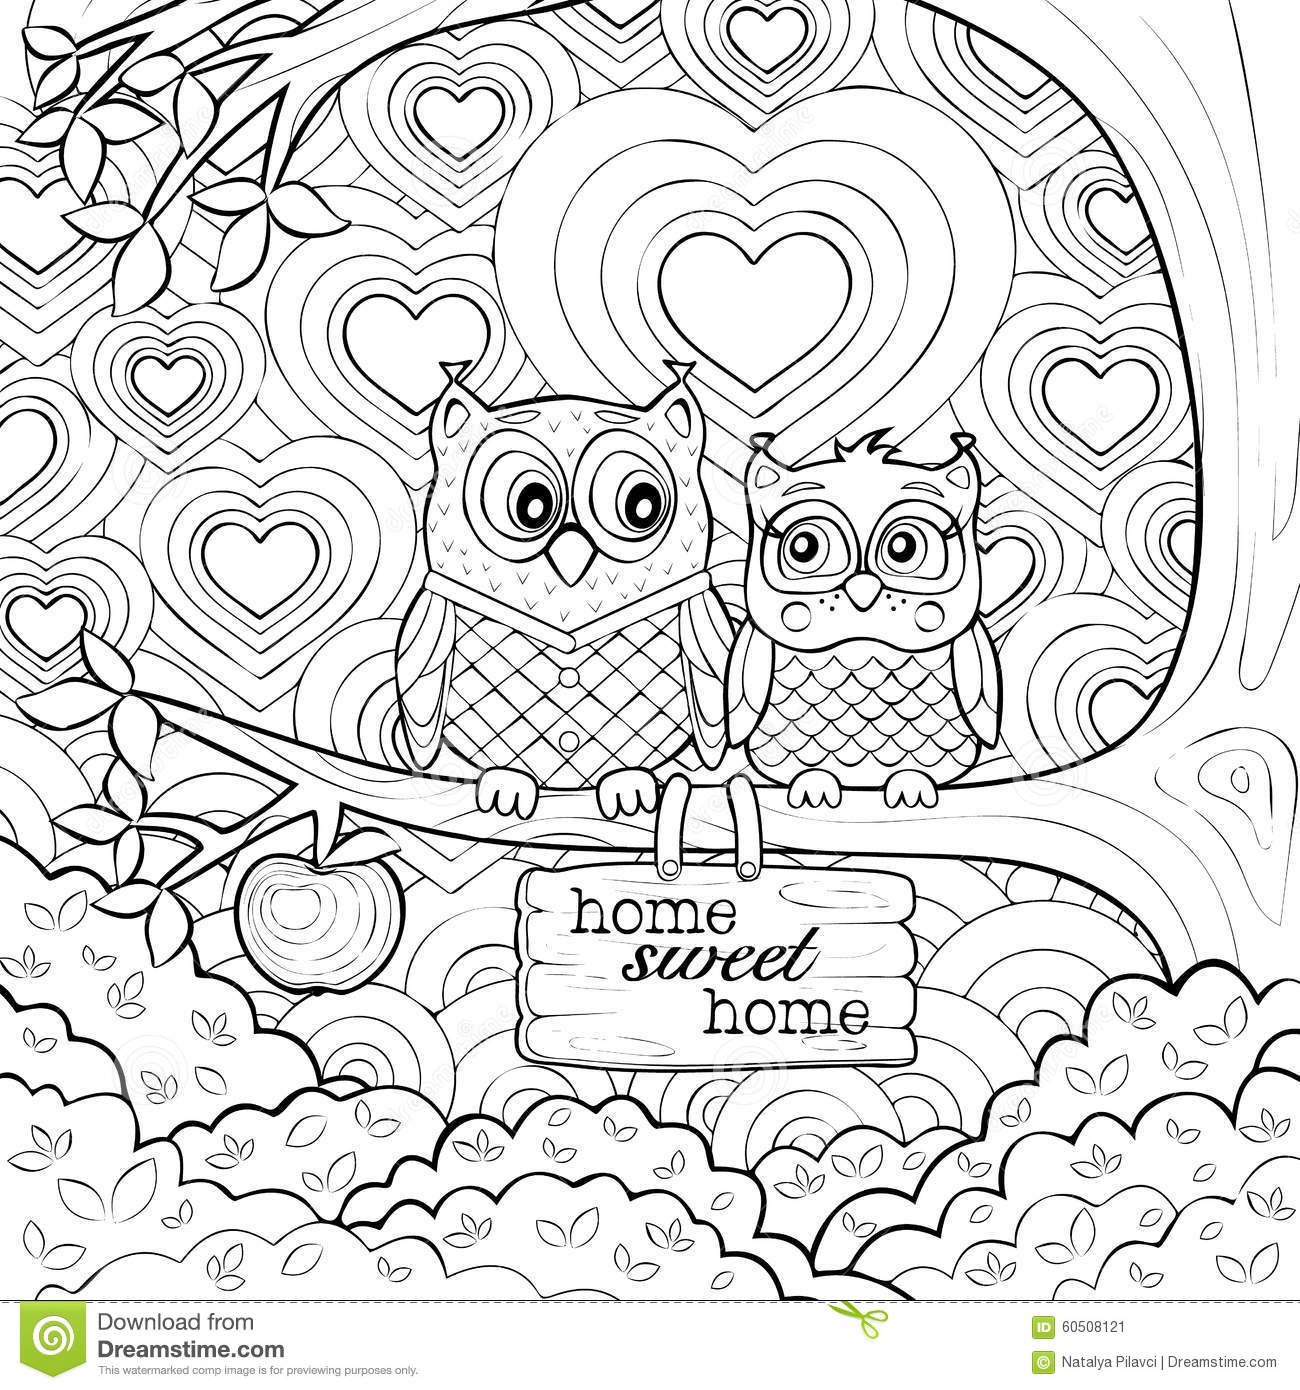 art pictures to color art therapy coloring pages to download and print for free art color to pictures